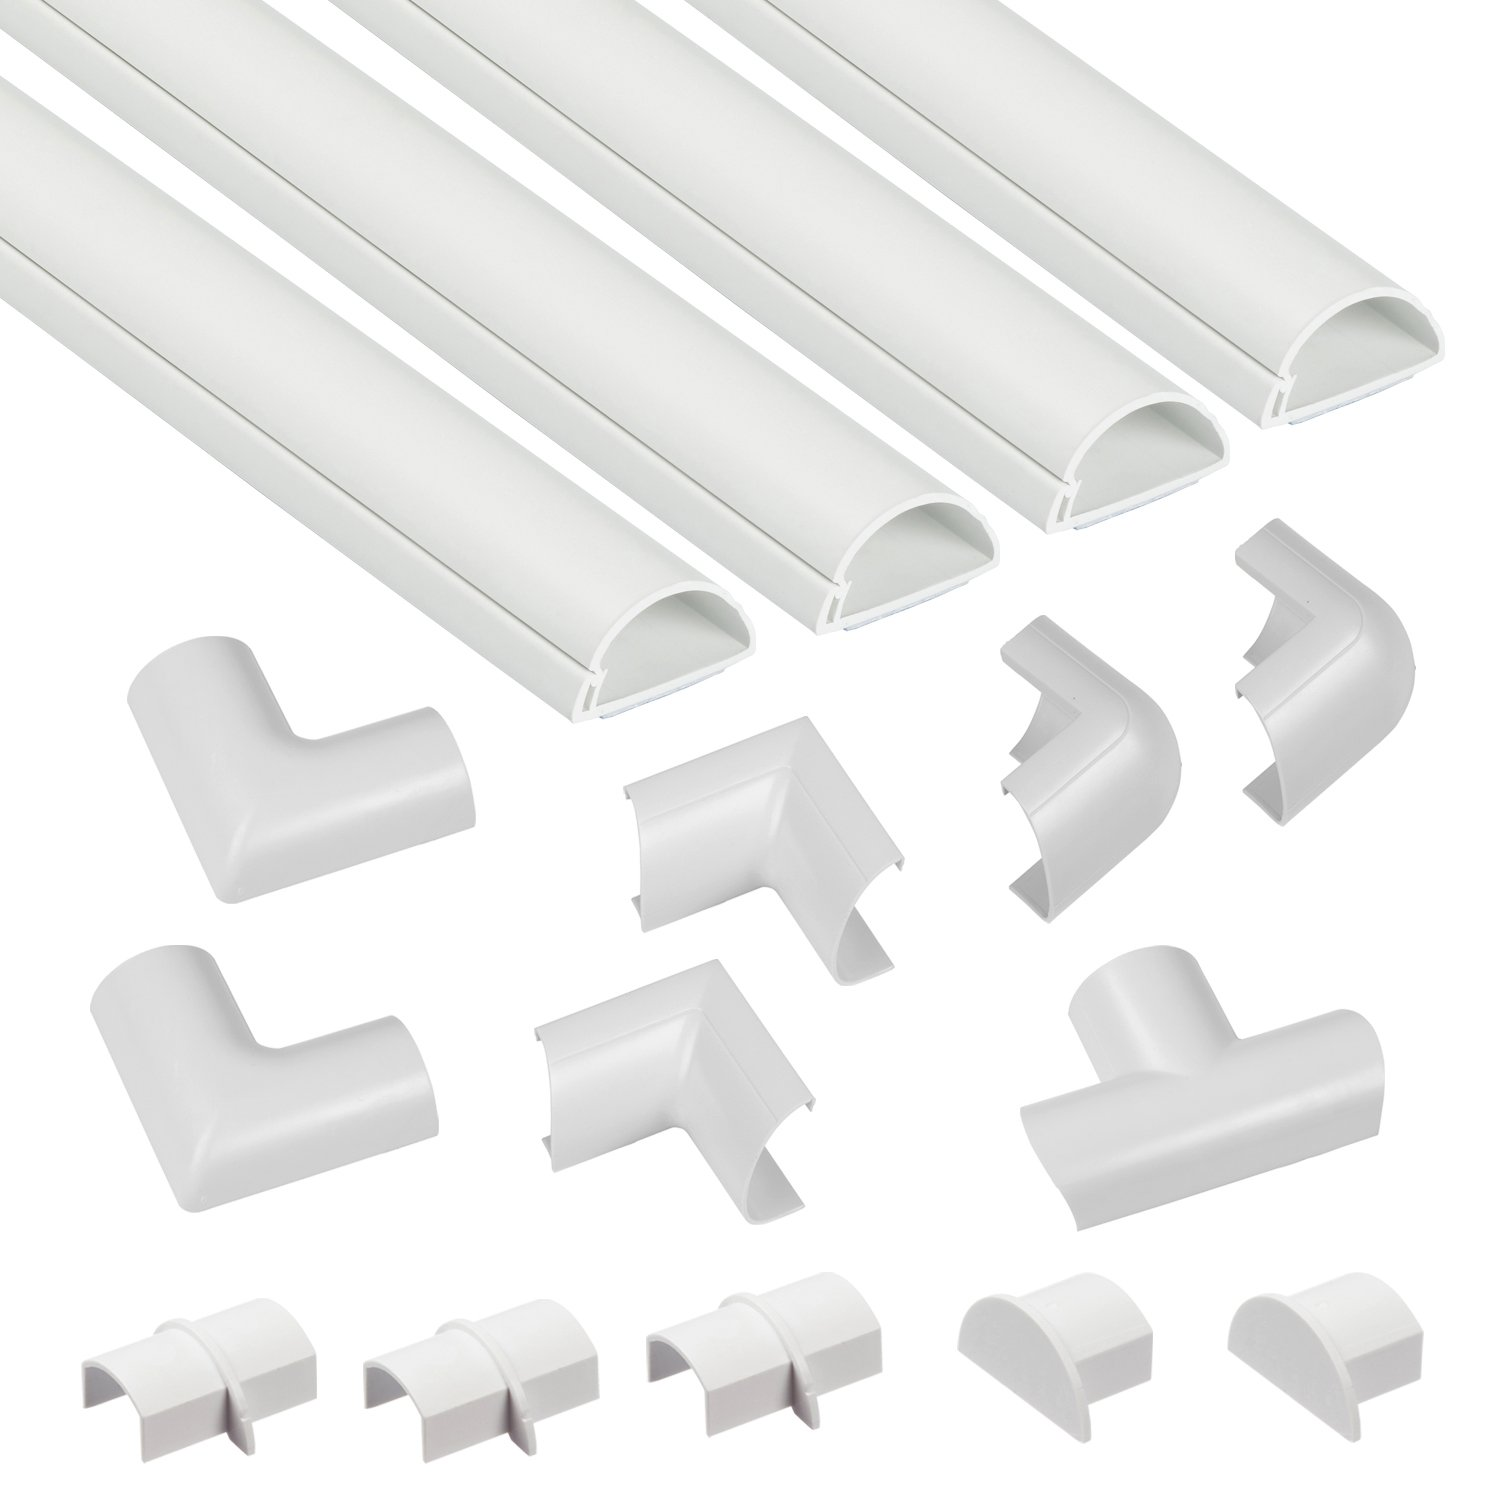 "D-Line Mini Cable Raceway Kit | Self-Adhesive Wire Covers | Electrical Raceway, Popular Cable Organizer for Home Theater, TV, Office and Home | 4 x 39"" Lengths Per Pack - White"